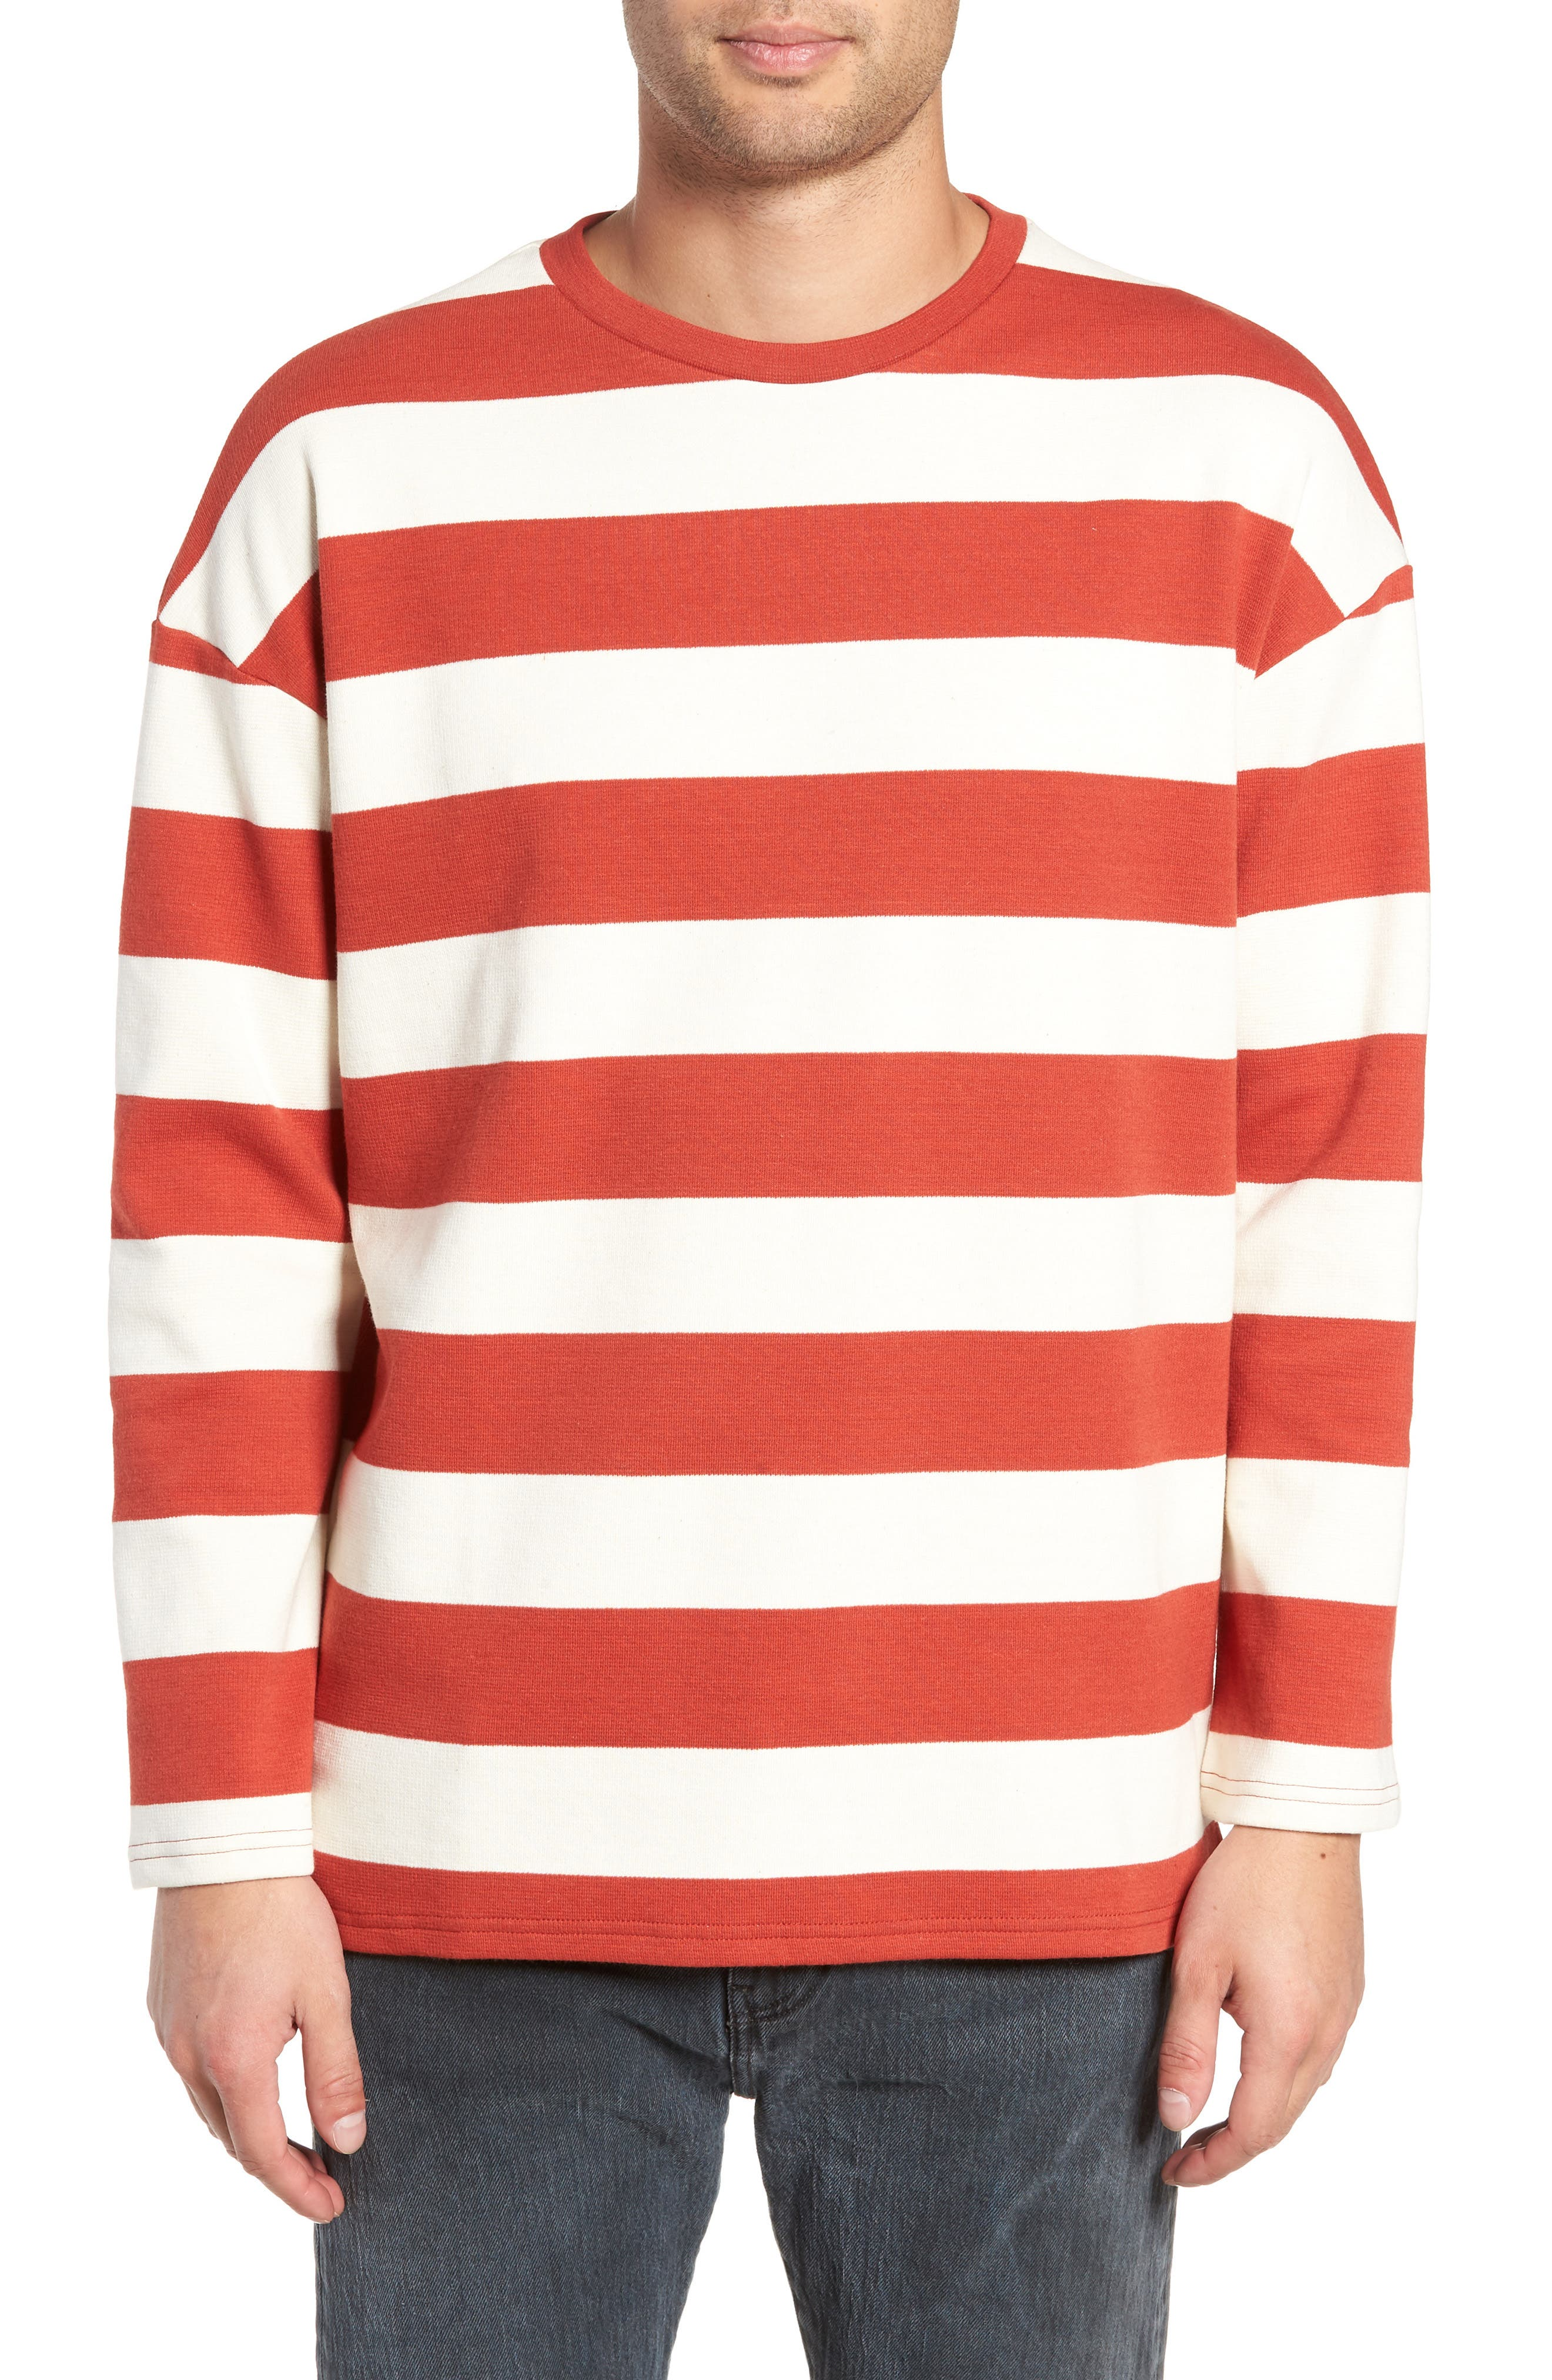 Stripe Crewneck Sweatshirt by Native Youth